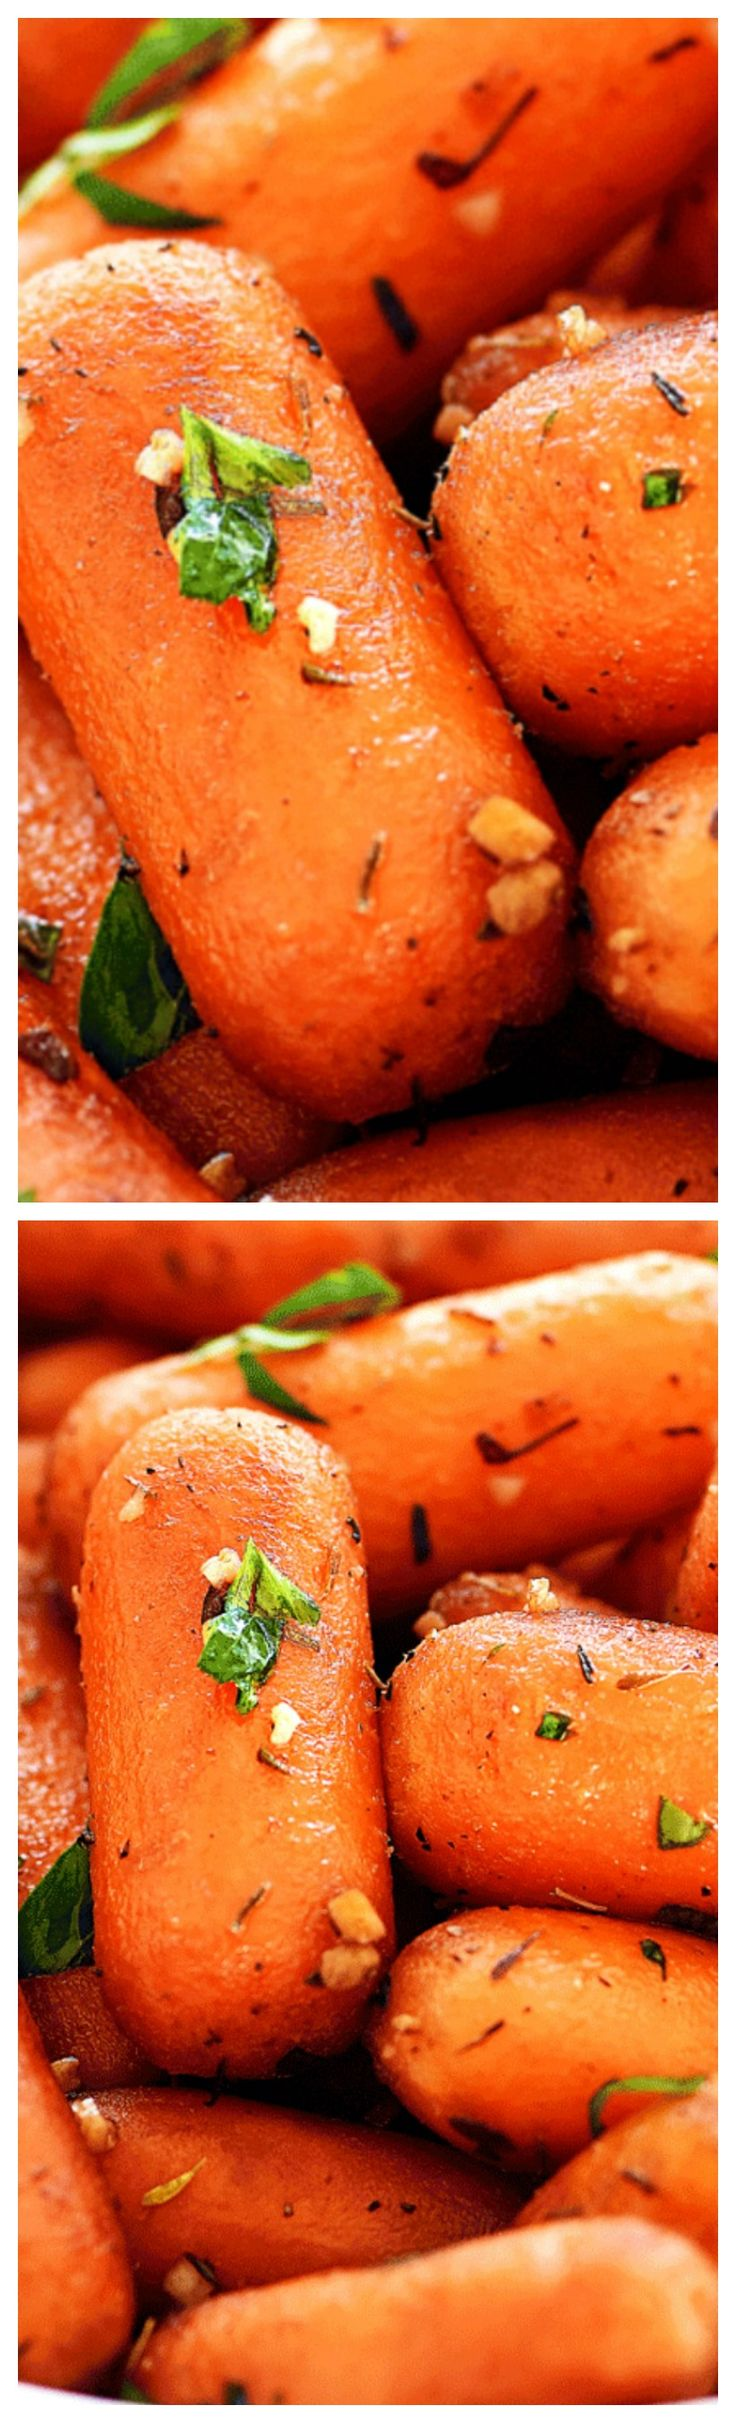 Garlic Roasted Carrots ~ Delicious oven-baked carrots that are loaded with flavor!